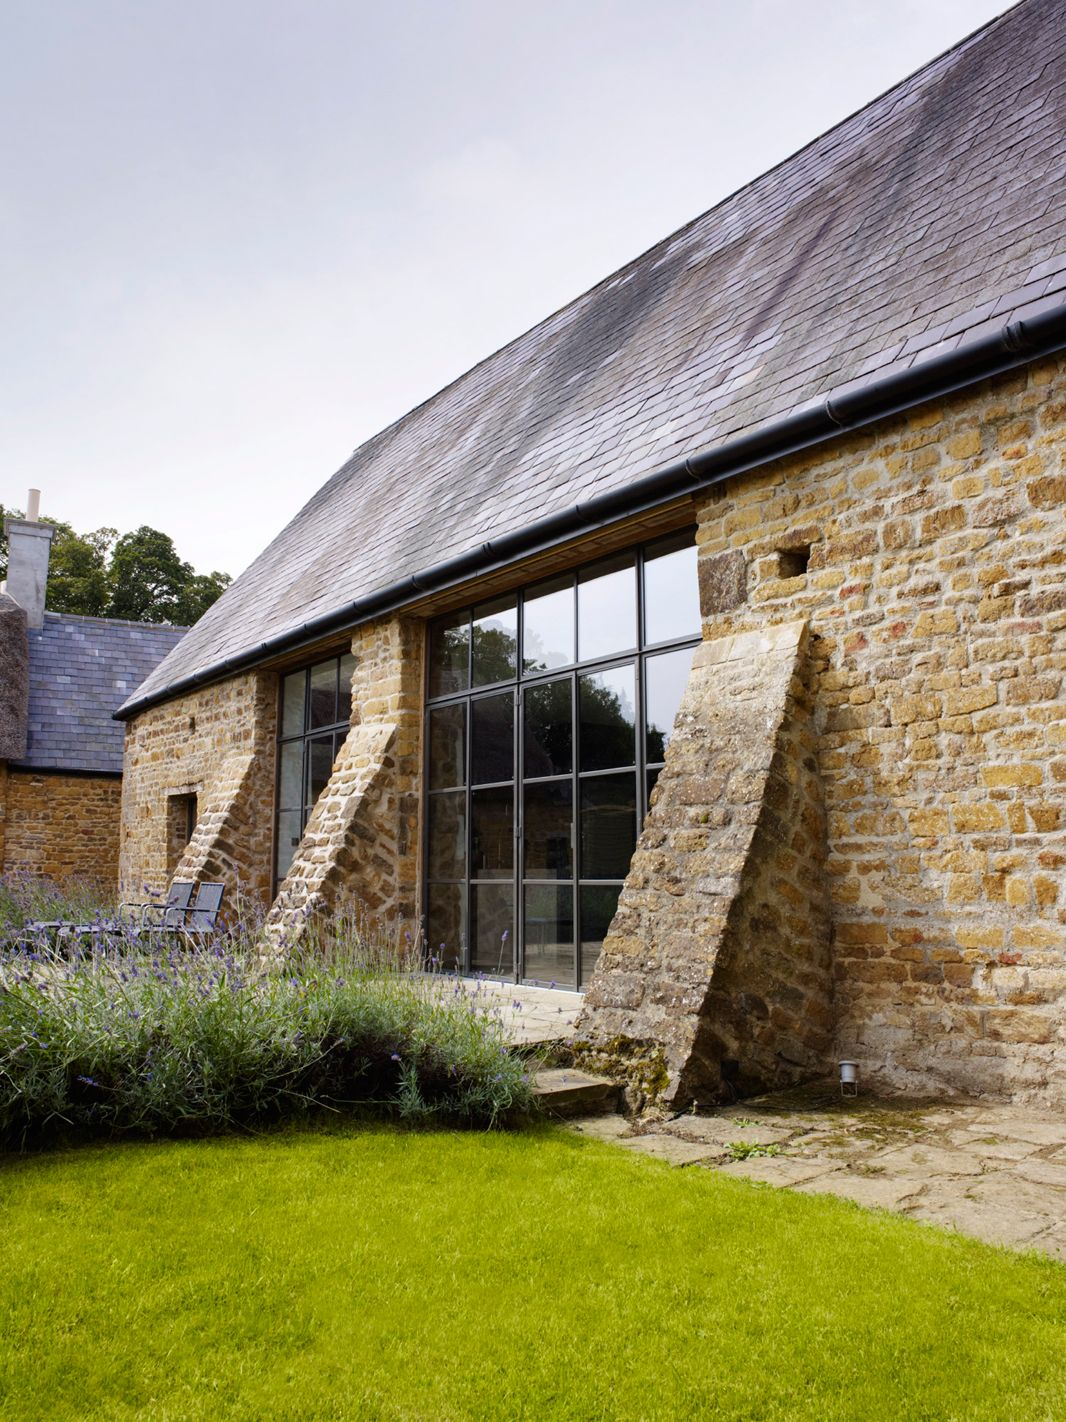 oxfordshire barn conversion by john minshaw photo lucas allen 02 home renovation in 2019. Black Bedroom Furniture Sets. Home Design Ideas